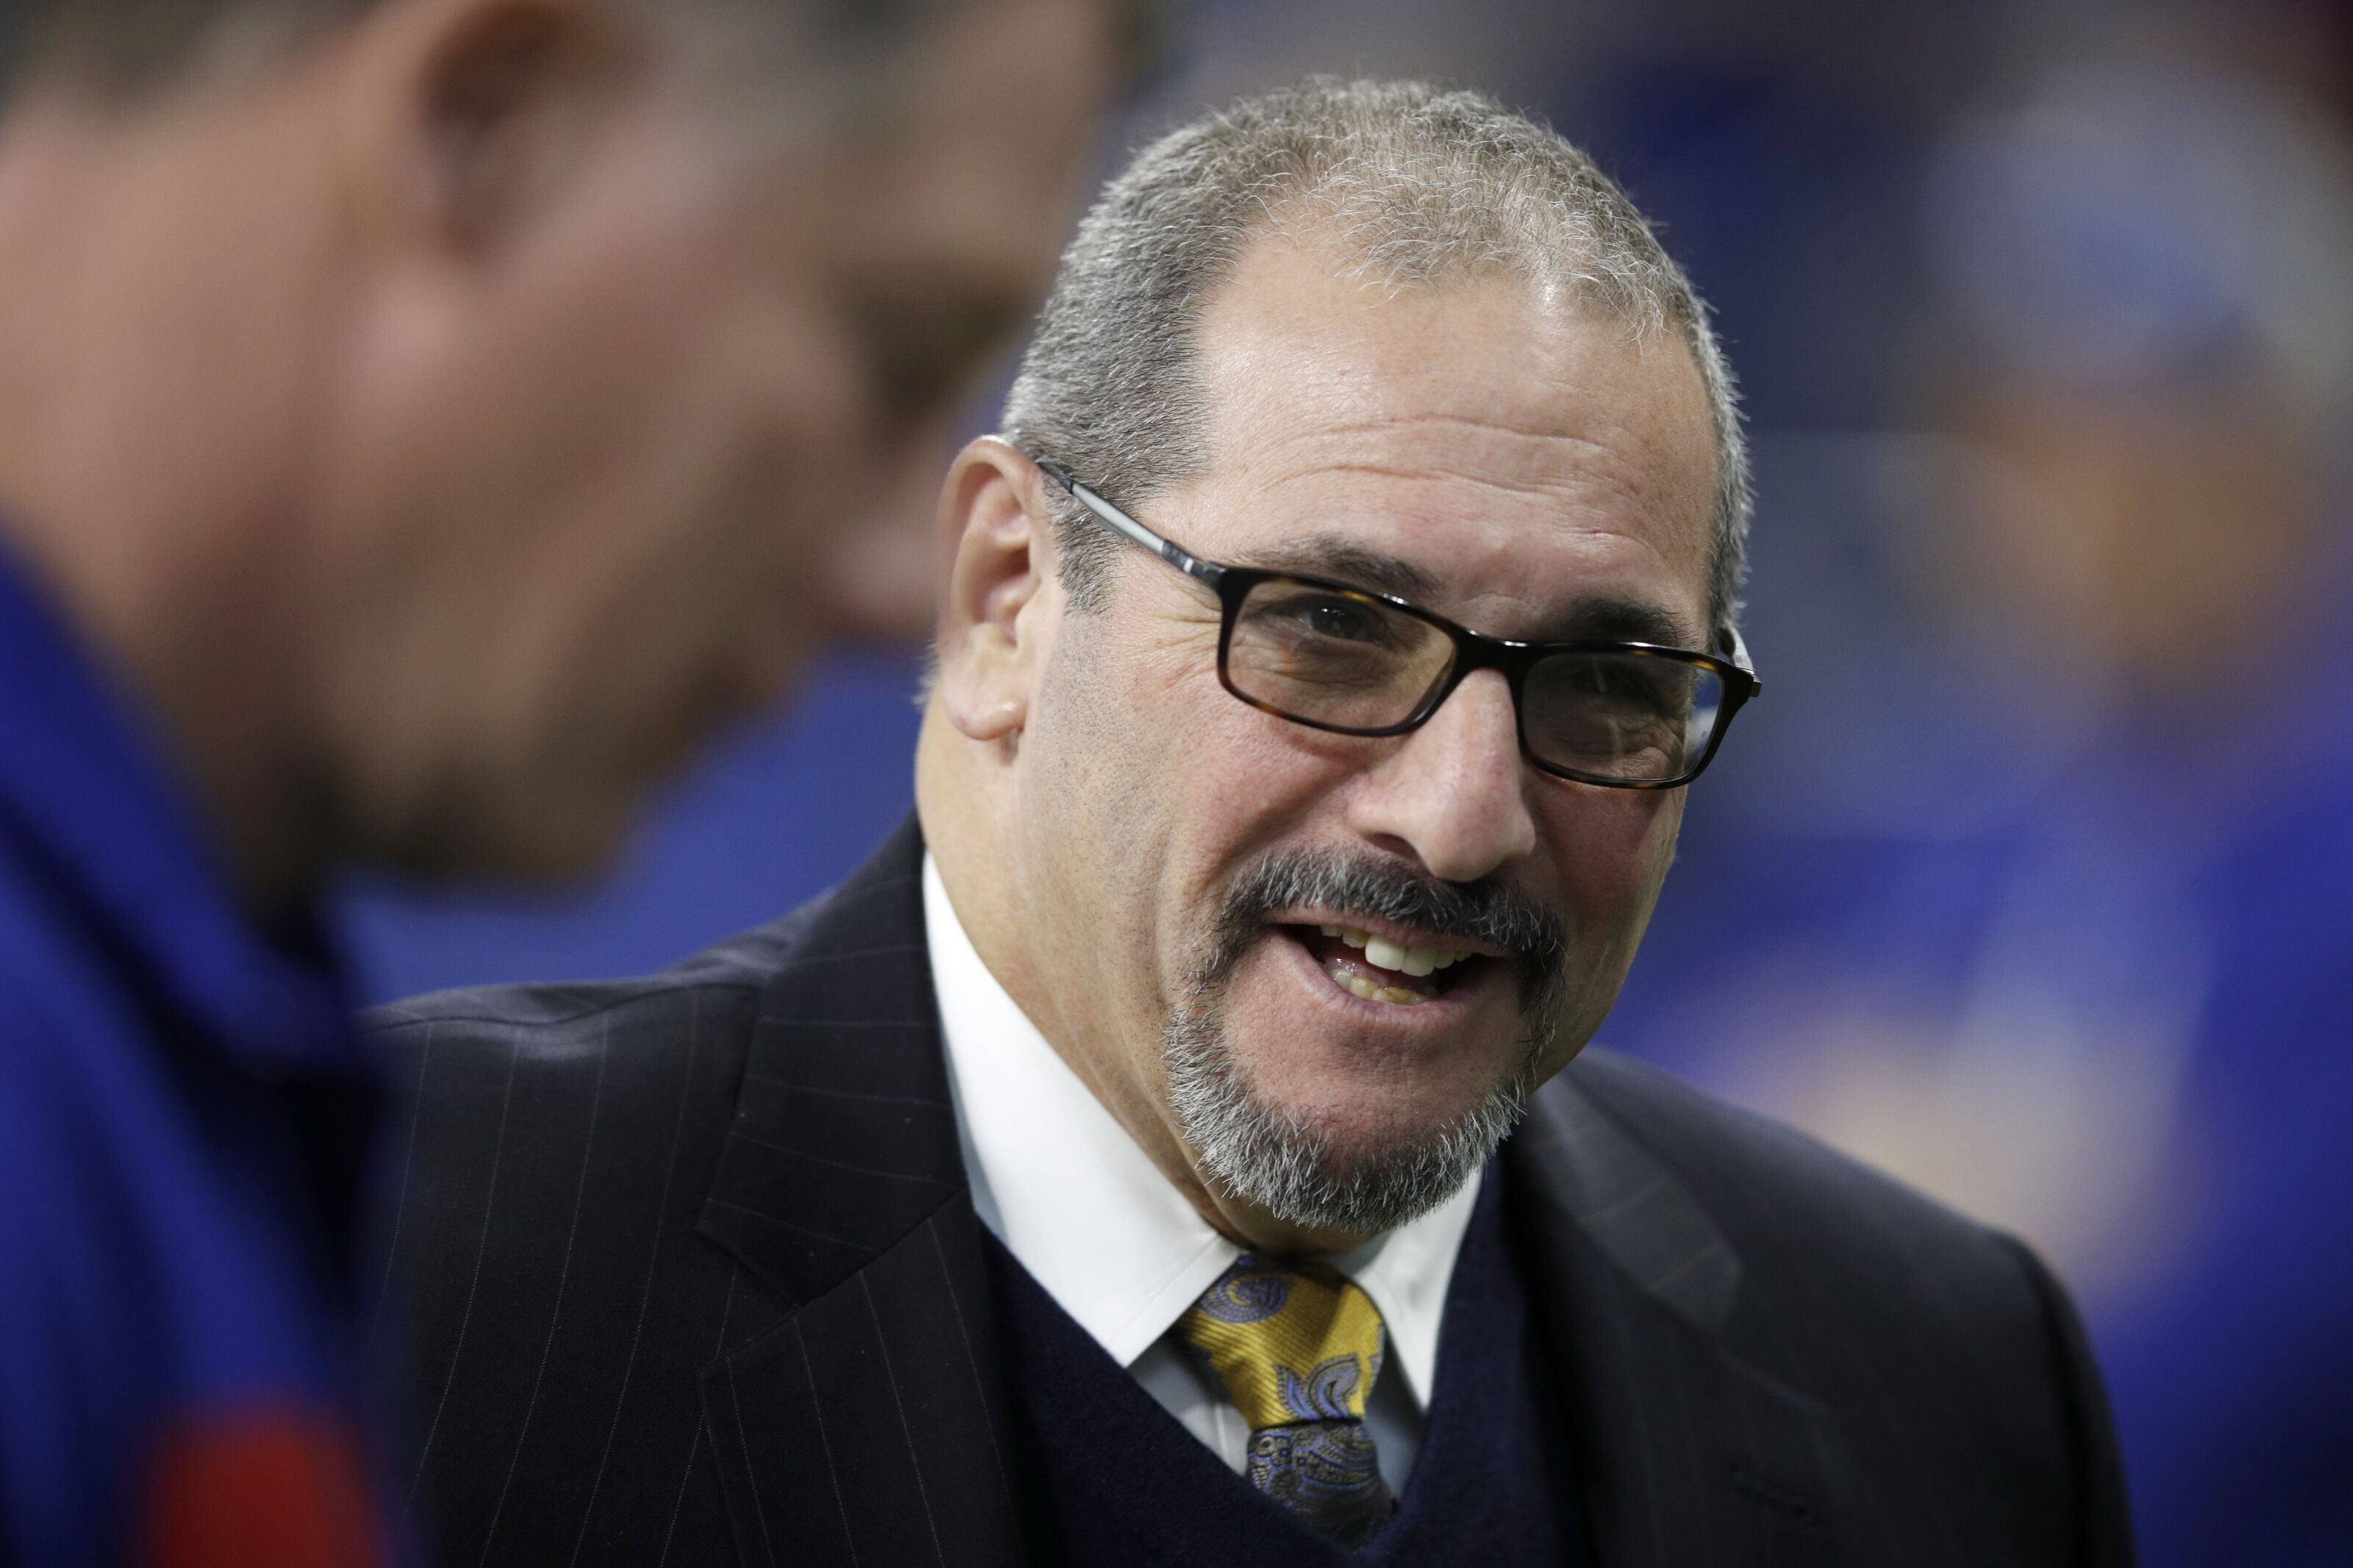 The New York Giants need to figure out a plan